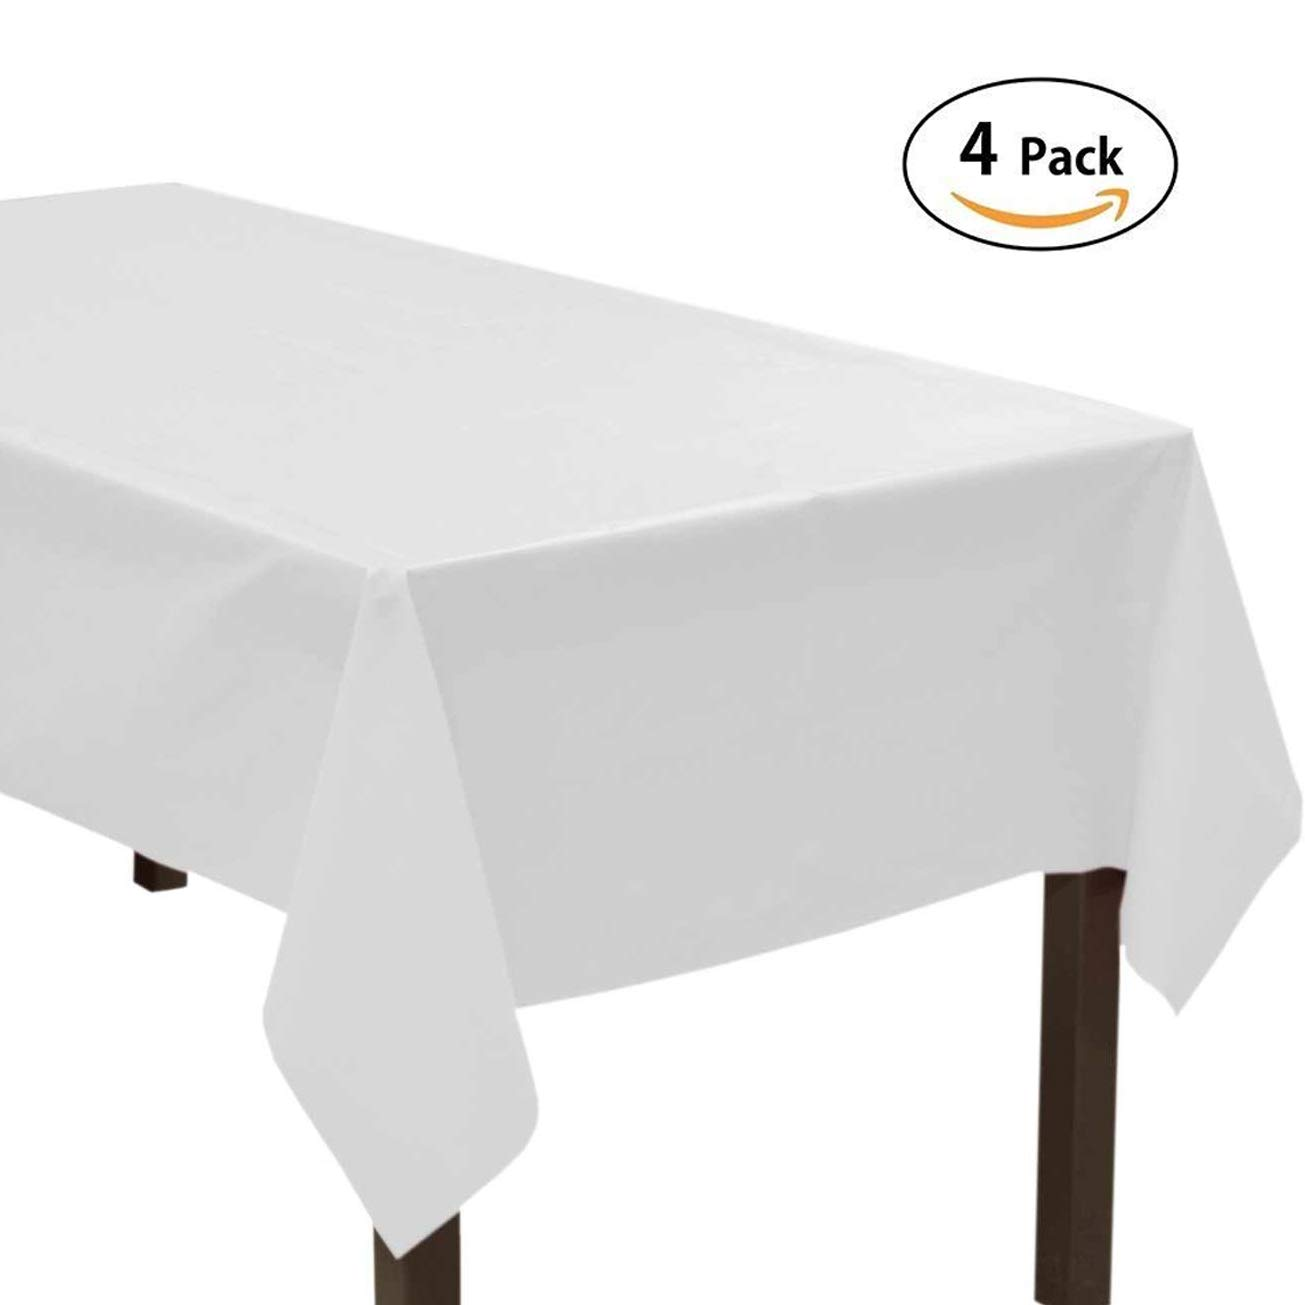 7PENNY 4 Pack Disposable Tablecloth 37cm*274cm Rectangle Plastic Party Table Cloth Covers For Party Easily